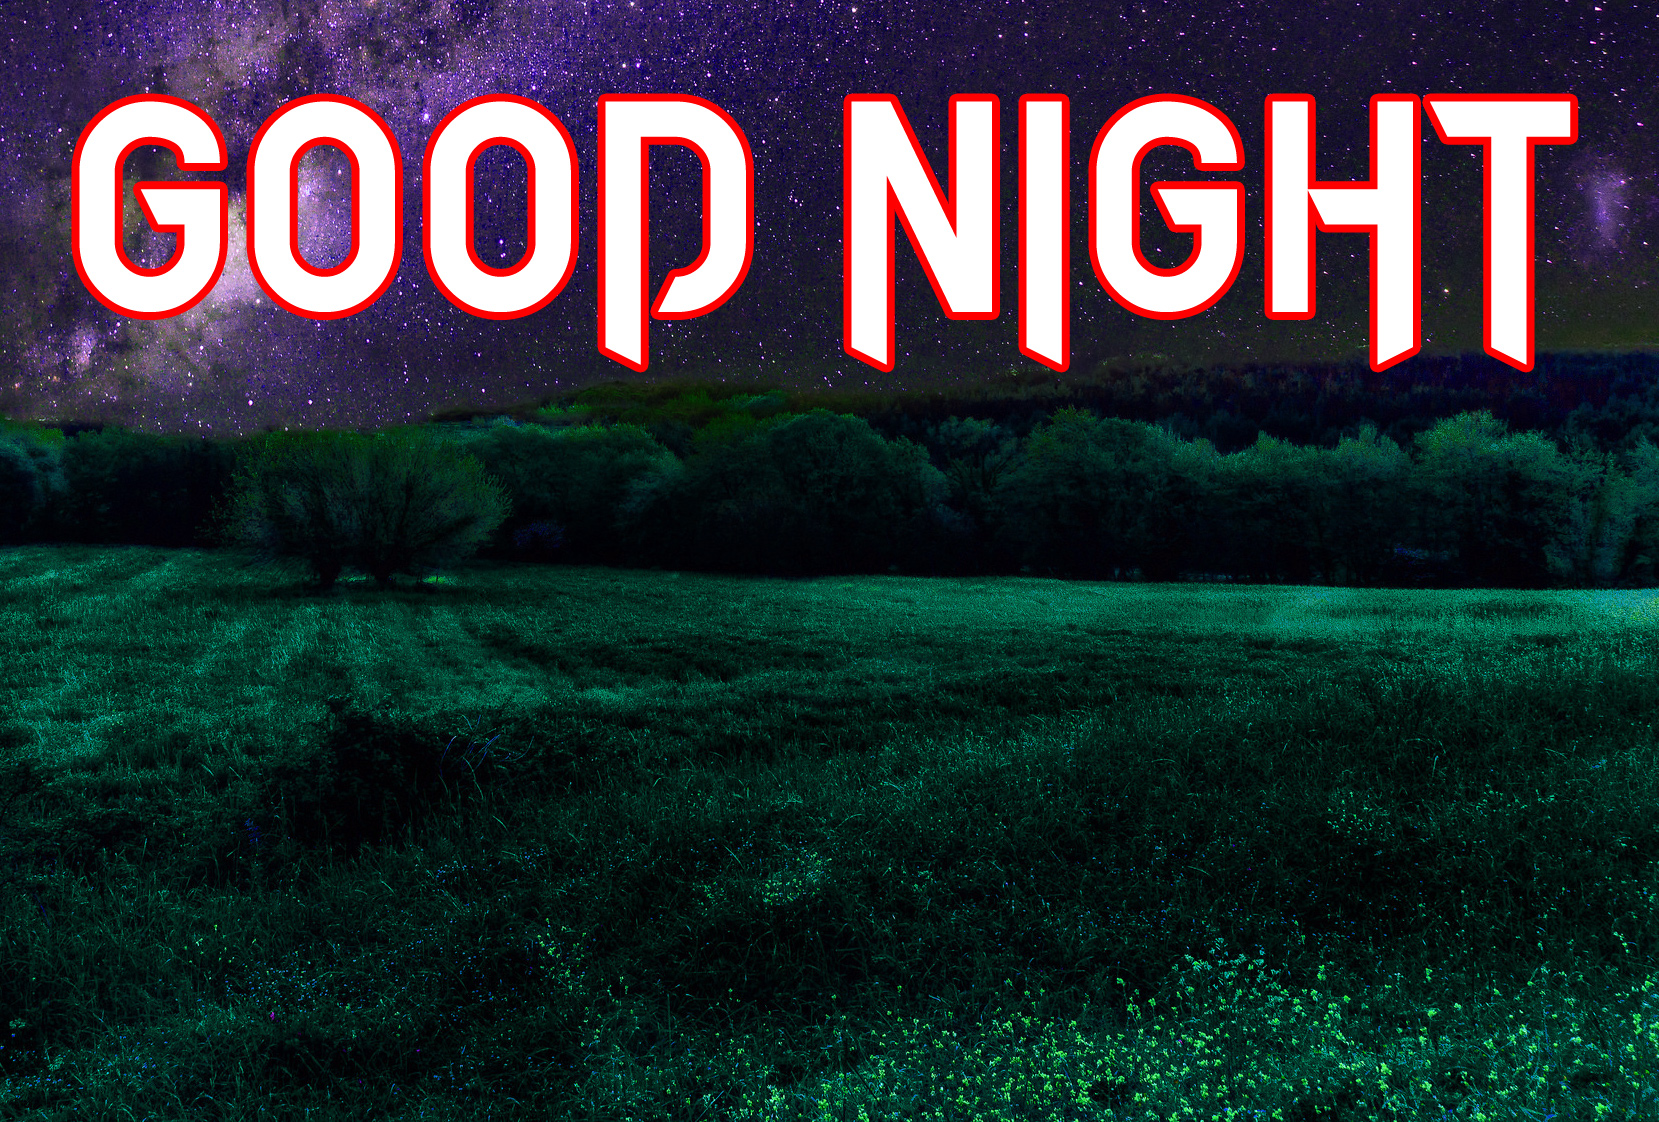 DOWNLOAD GOOD NIGHT IMAGES PHOTO WALLPAPER DOWNLOAD